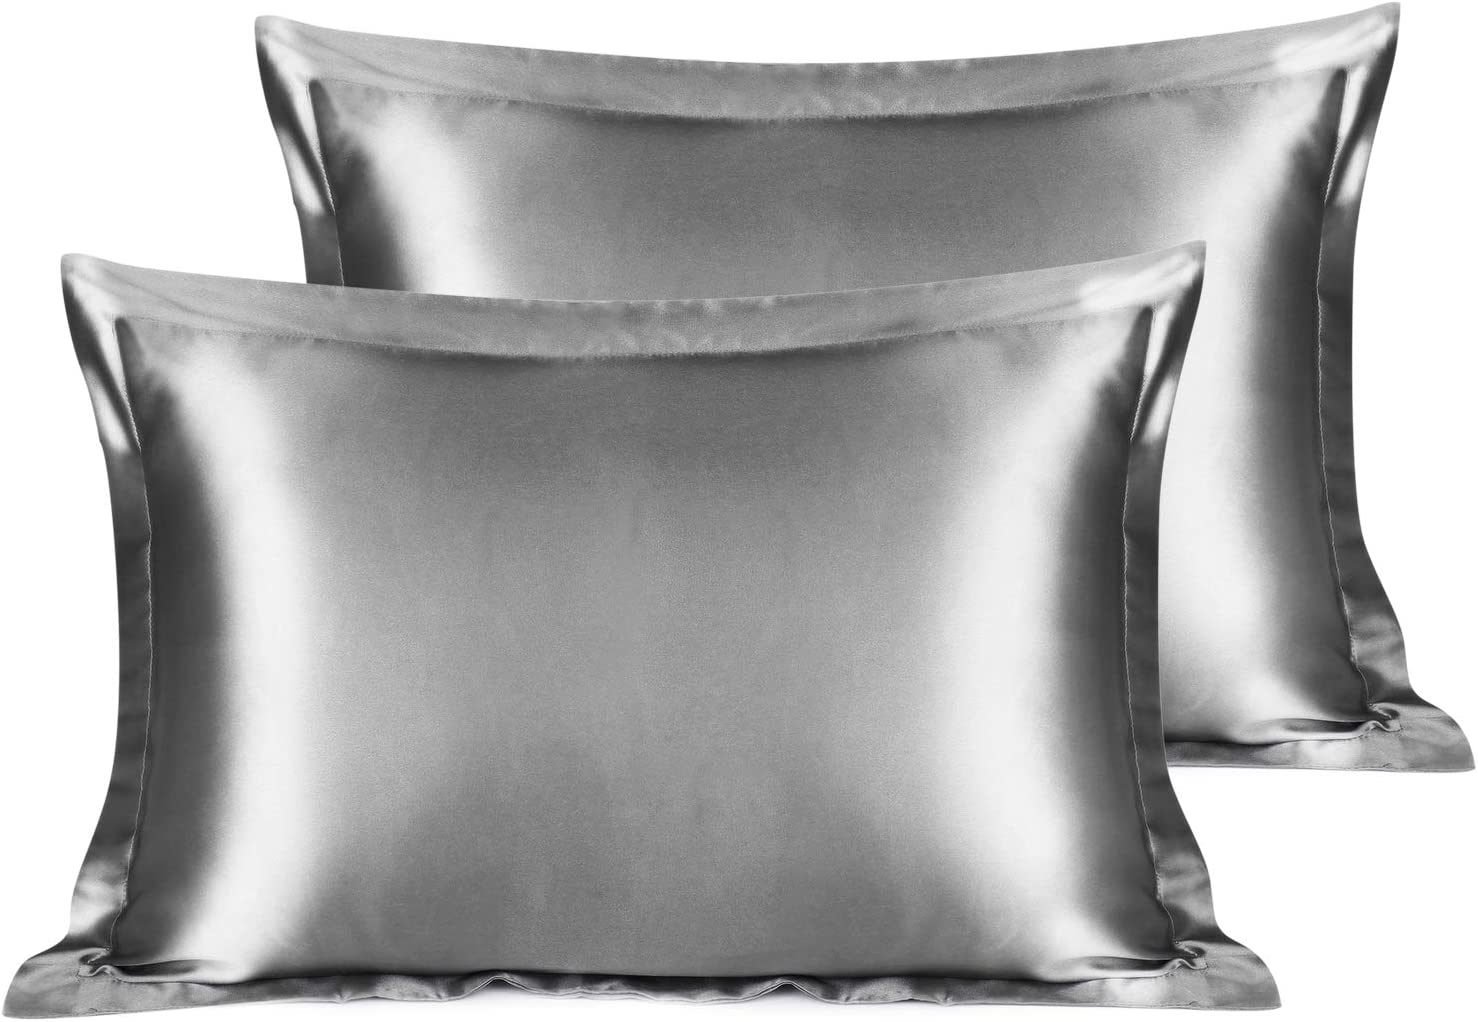 YANIBEST Satin Pillow Shams Set of 2 for Hair and Skin-Queen Size (20x30 inches) Pillow Cases-Super Soft Satin Pillowcase Covers with Envelope Closure,Grey